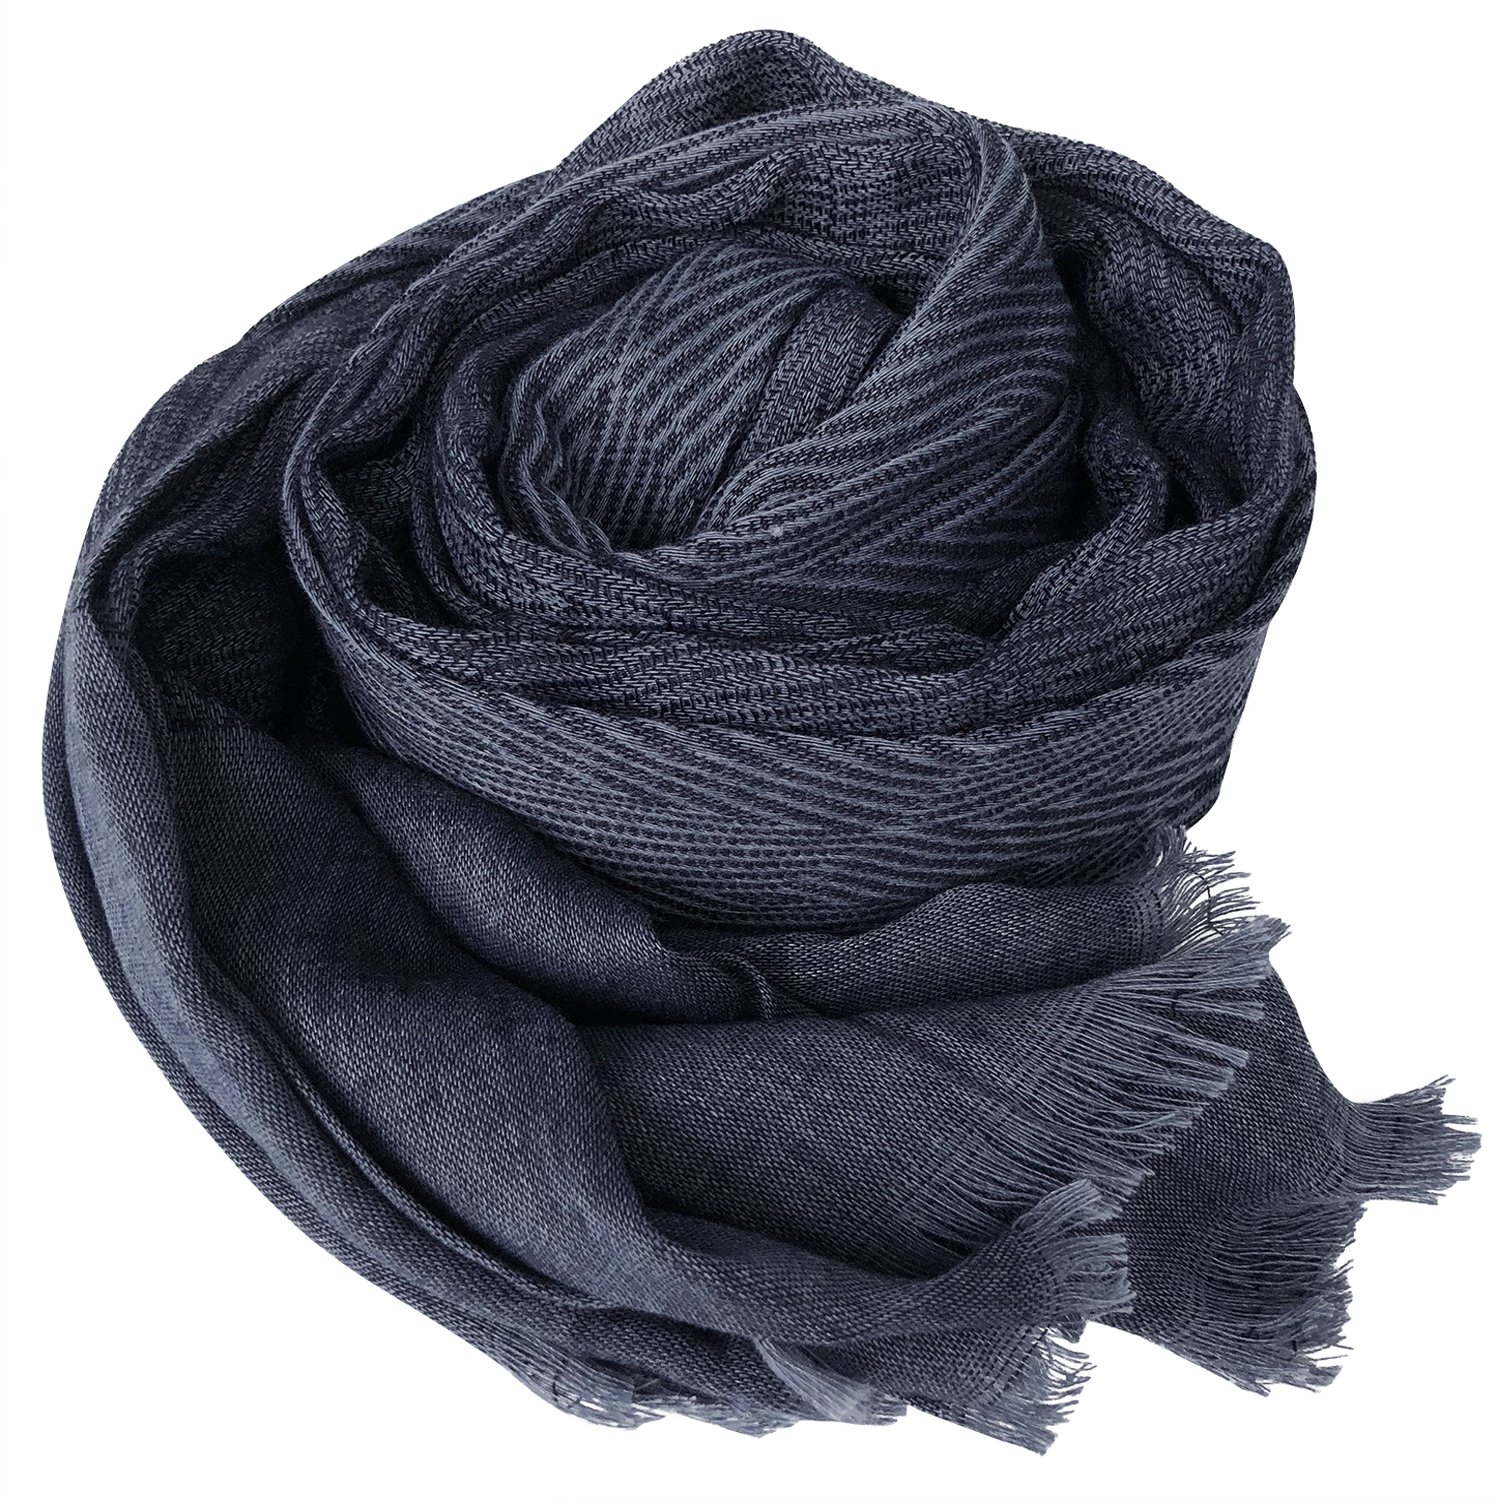 GERINLY Men Scarves Twill Cotton-Linen Long Winter Scarf (NavyBlue) by GERINLY (Image #2)